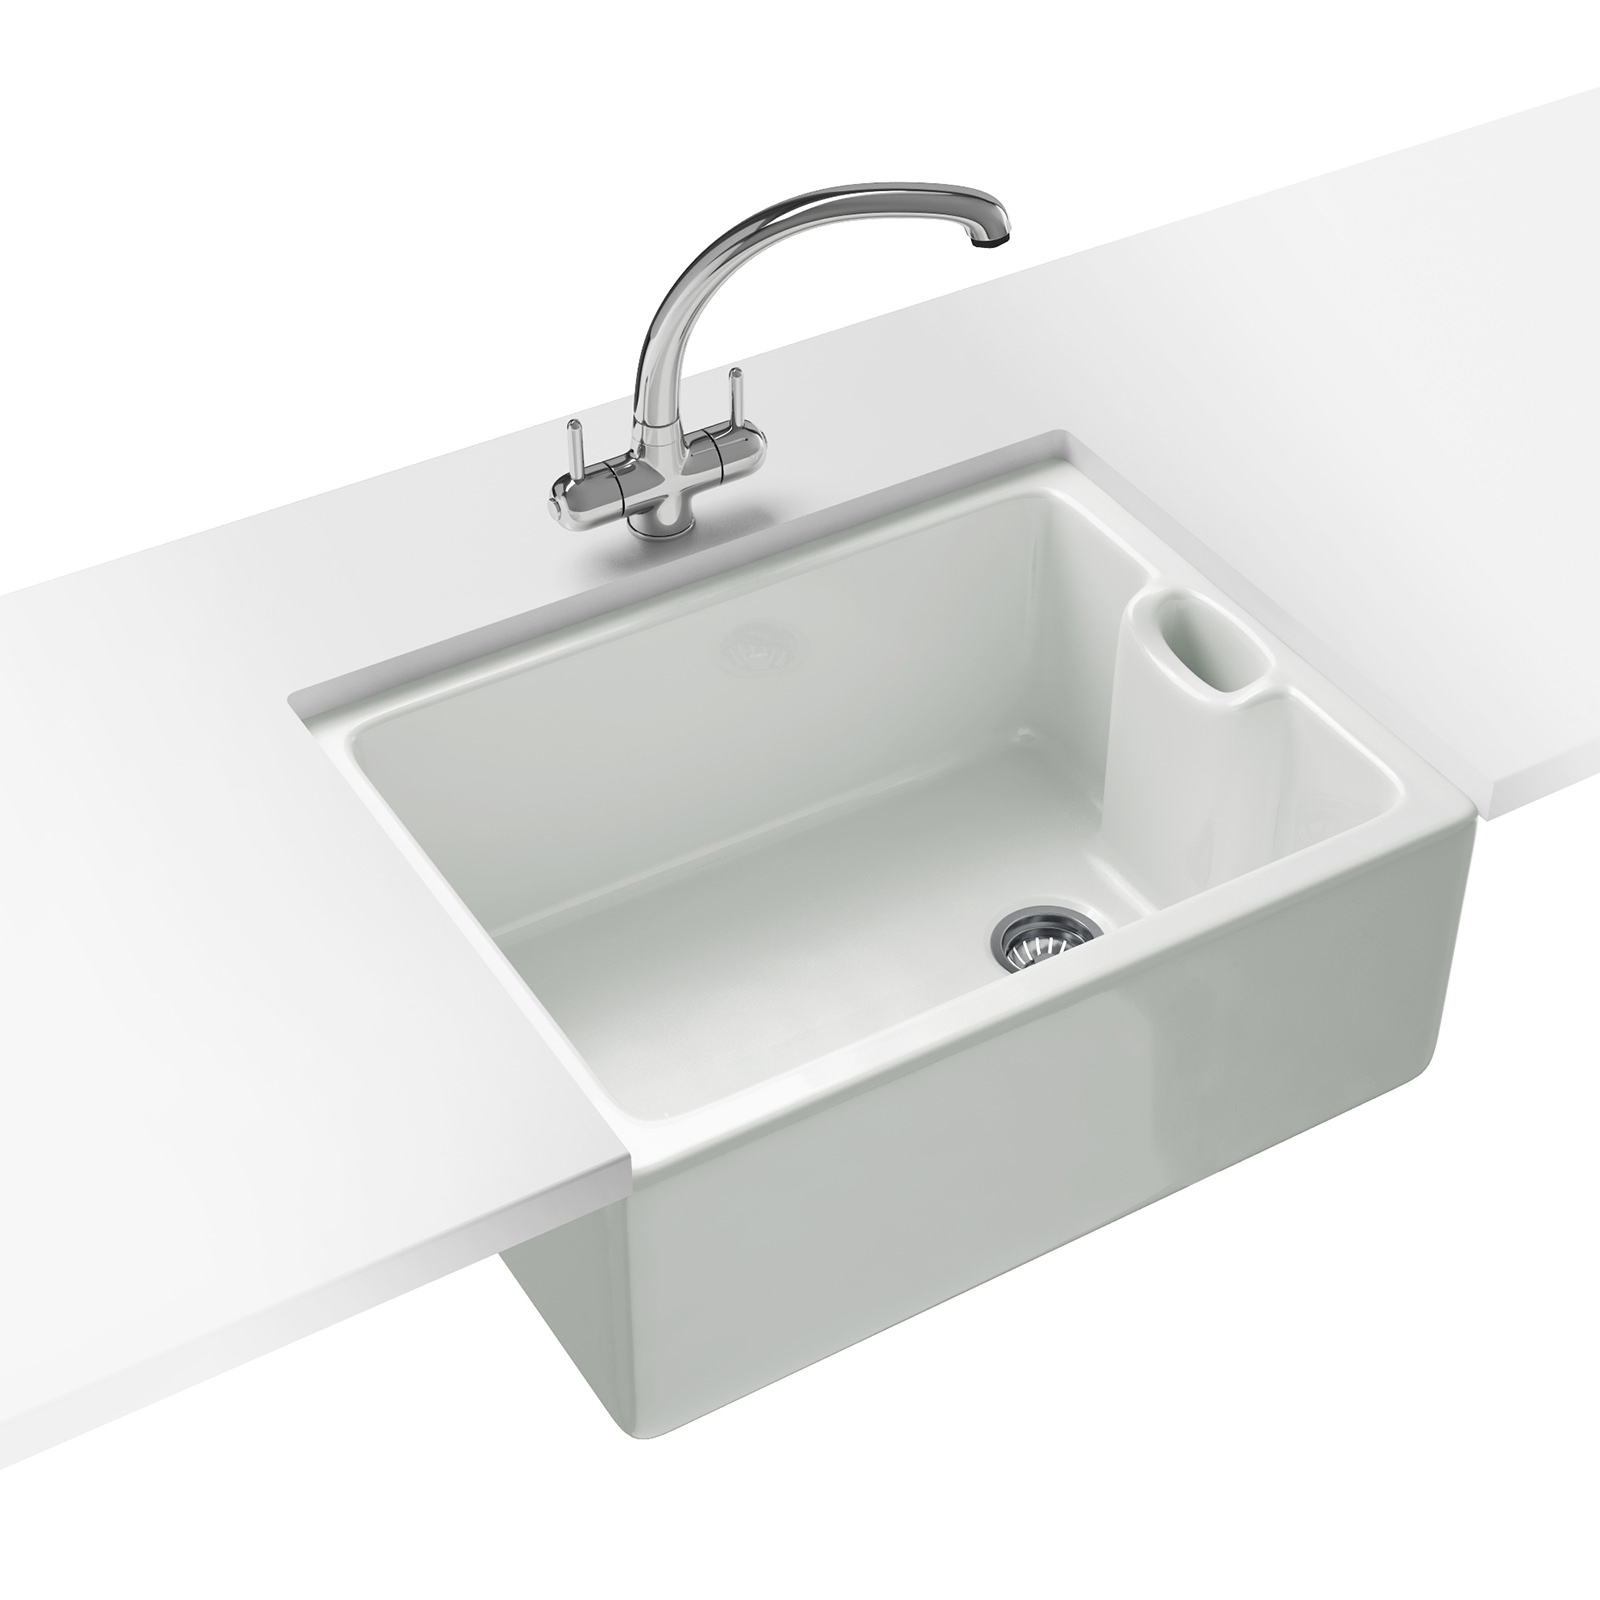 Belfast Bathroom Sink : ... Brand New Franke Belfast BAK 710 Propack - Ceramic White Sink And Tap